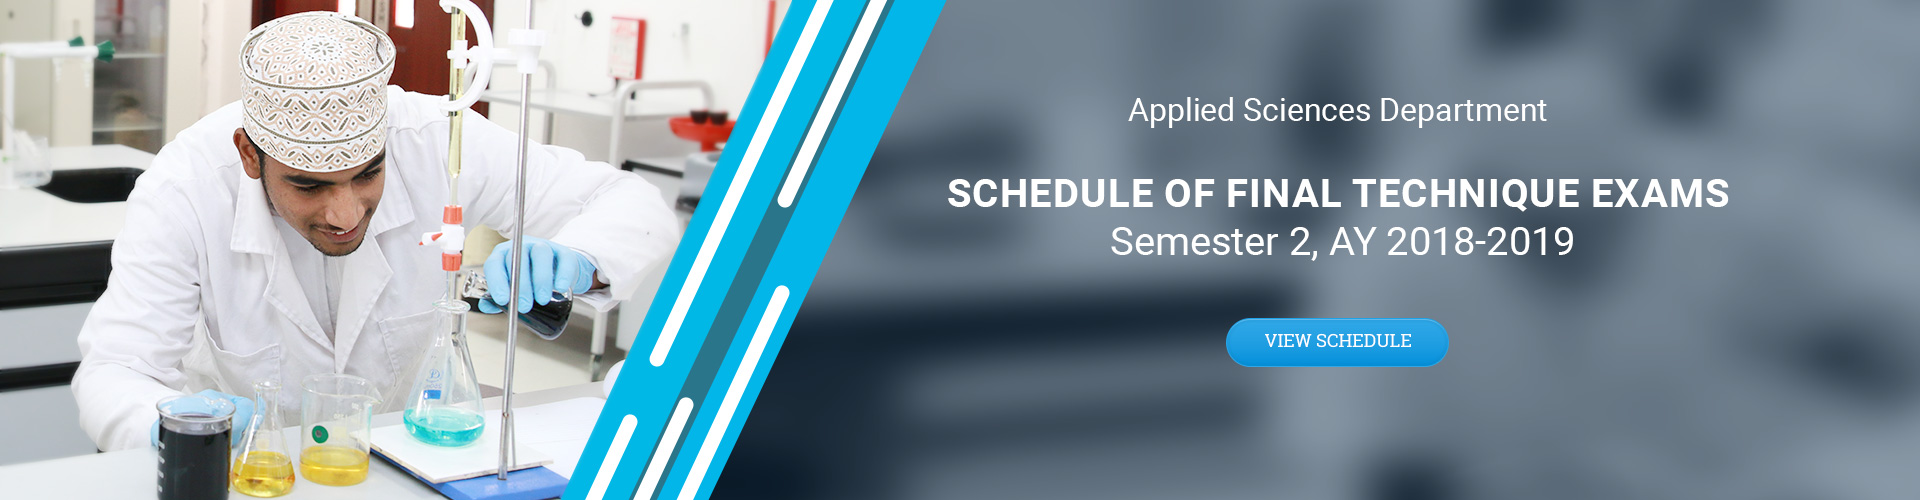 Applied Sciences Department - Schedule of Final Technique Exams Sem2 AY 2018-2019